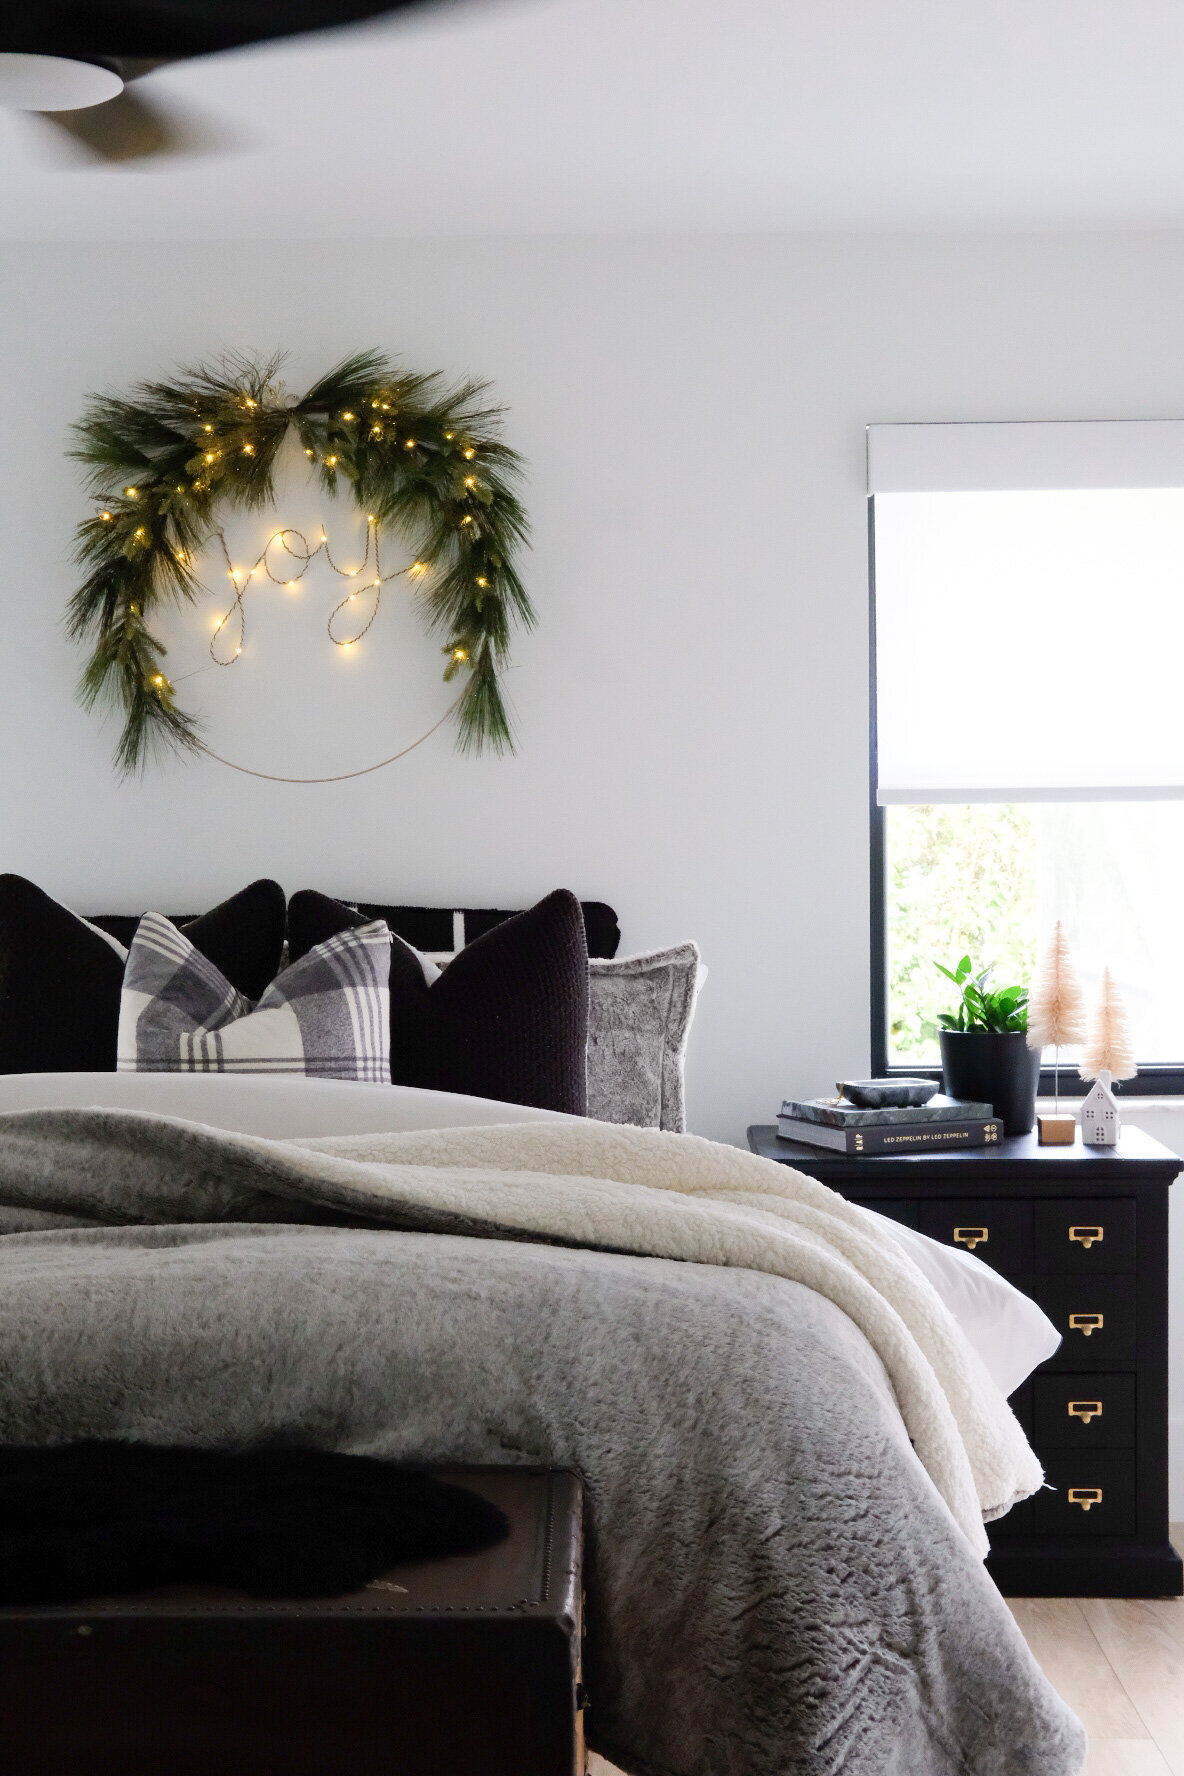 Christmas Decor 2020 Our Master Bedroom Me And Mr Jones